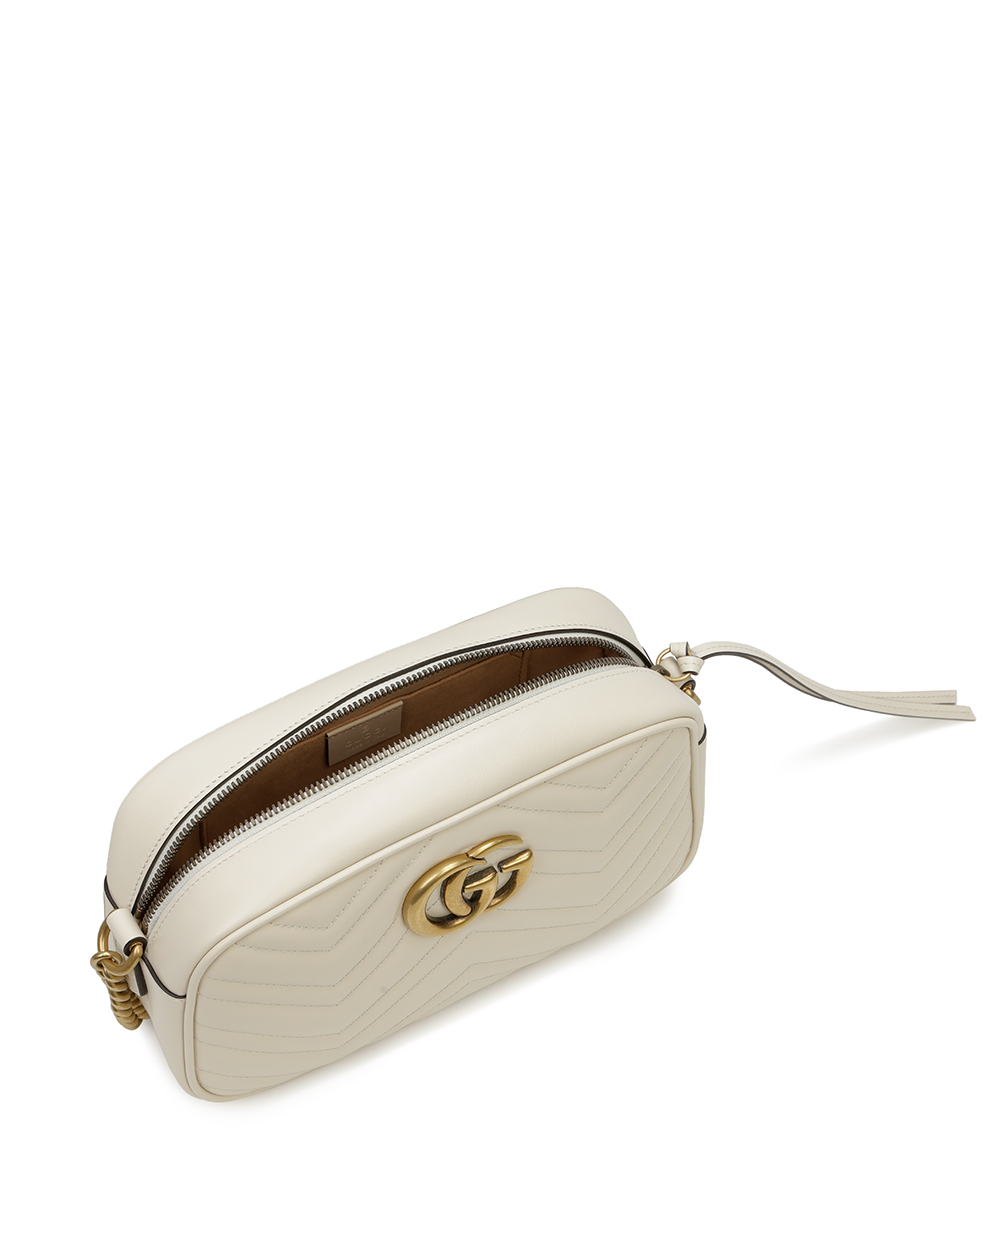 GG Marmont small shoulder bag 2